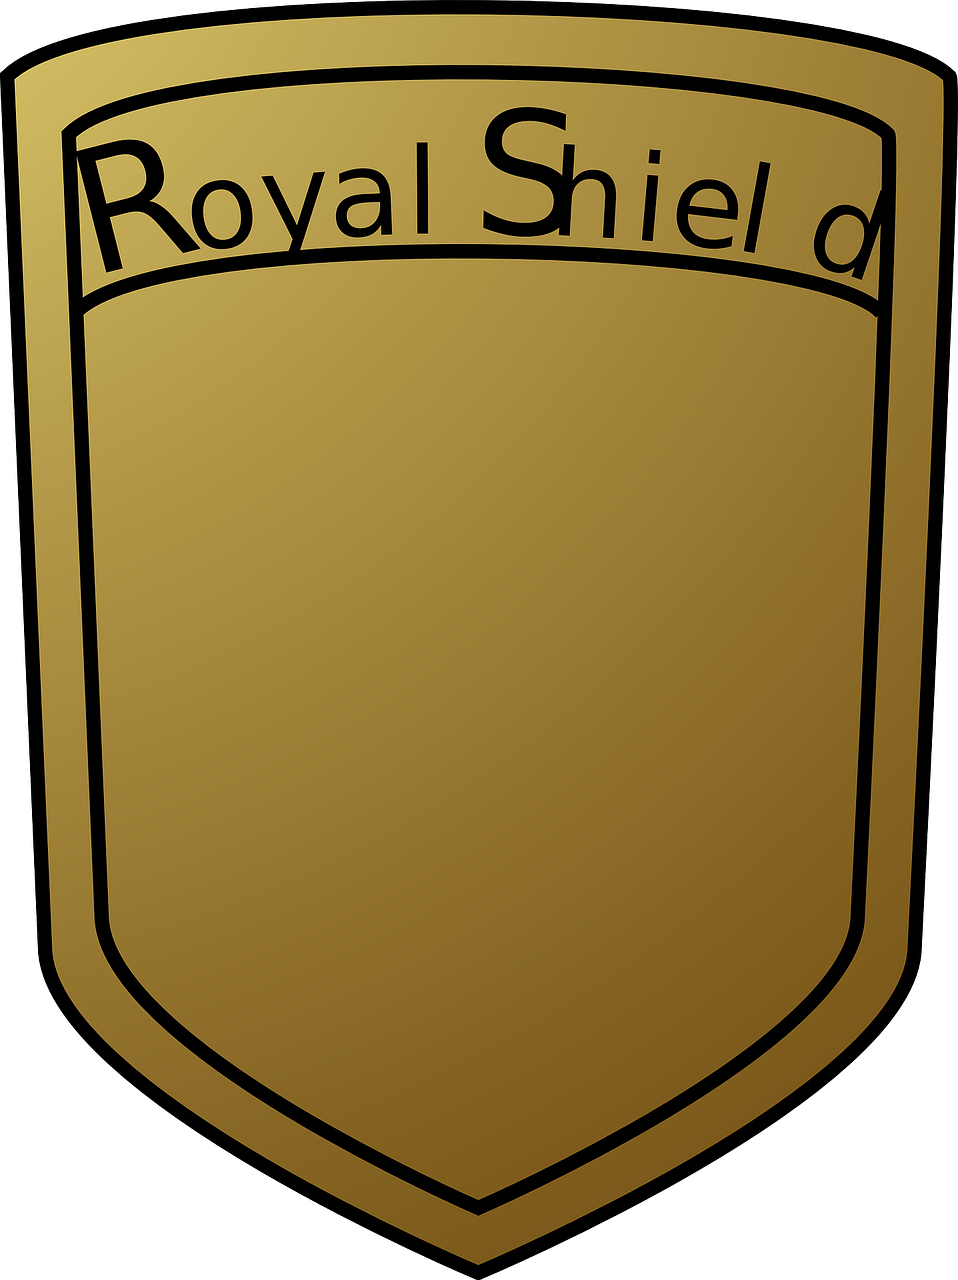 armor shield medieval free photo